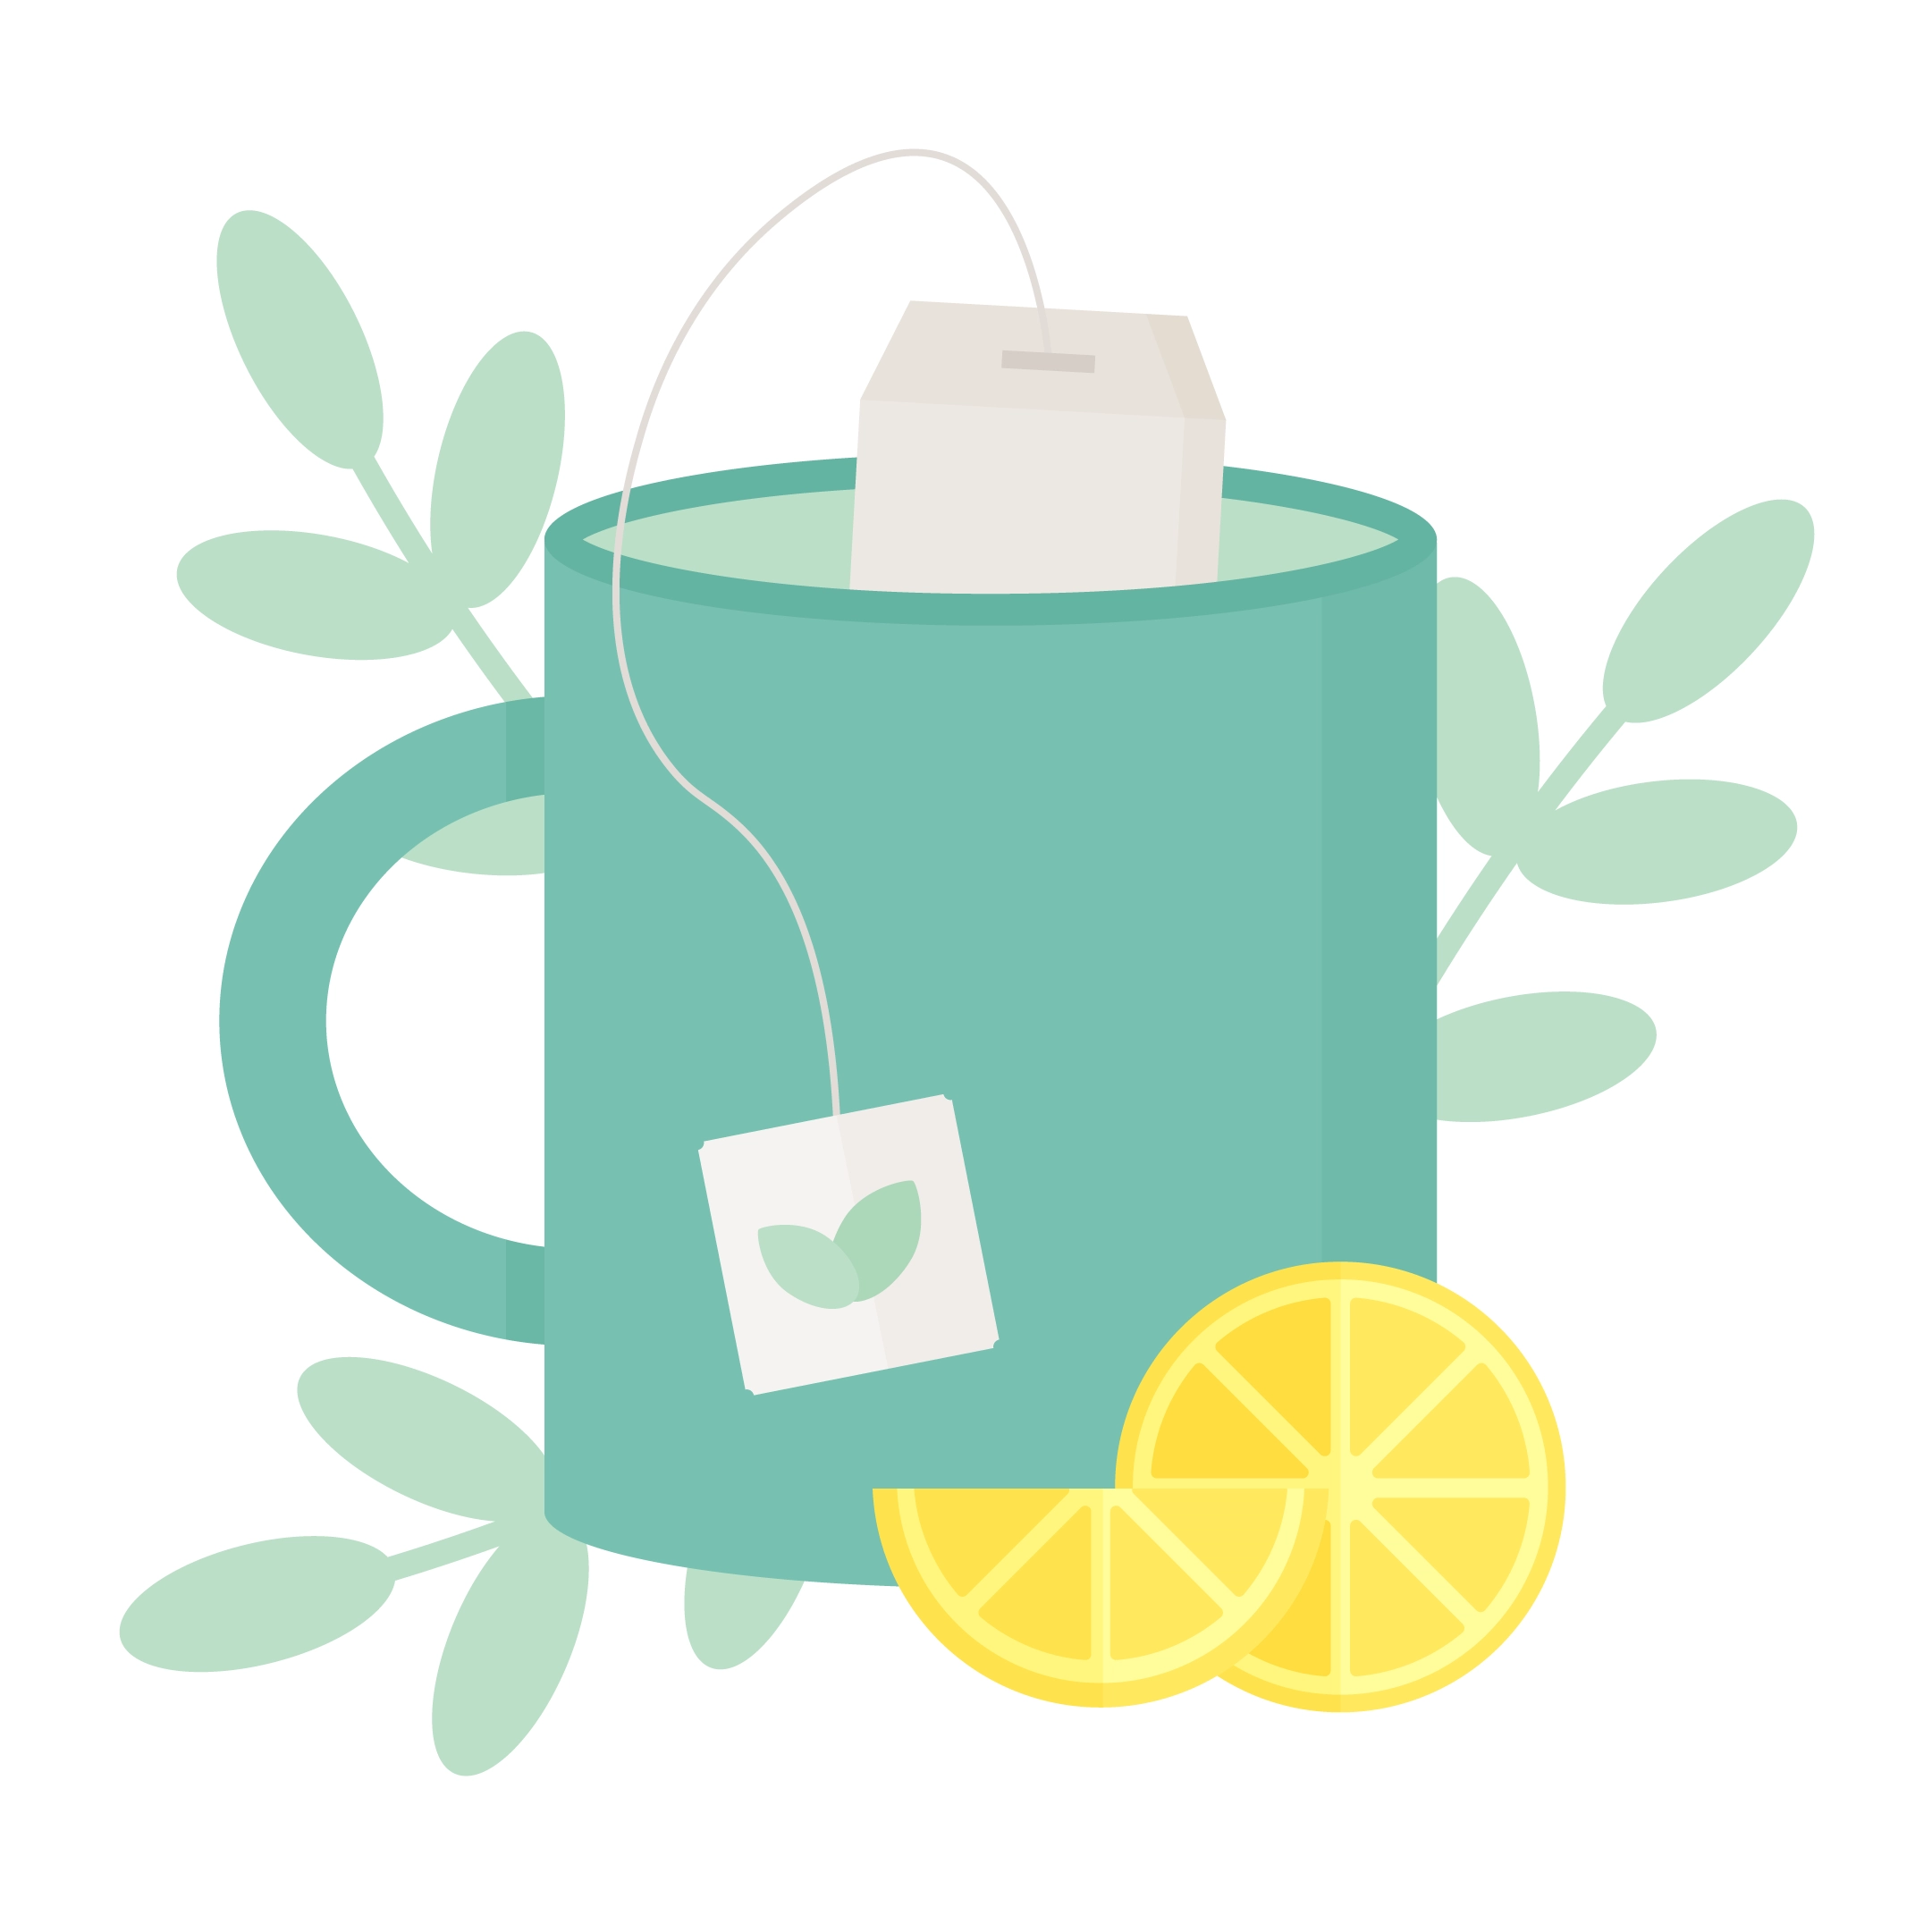 Vector illustration of a mug with a green tea bag, lemon slices in front & leaves in the background in flat design style